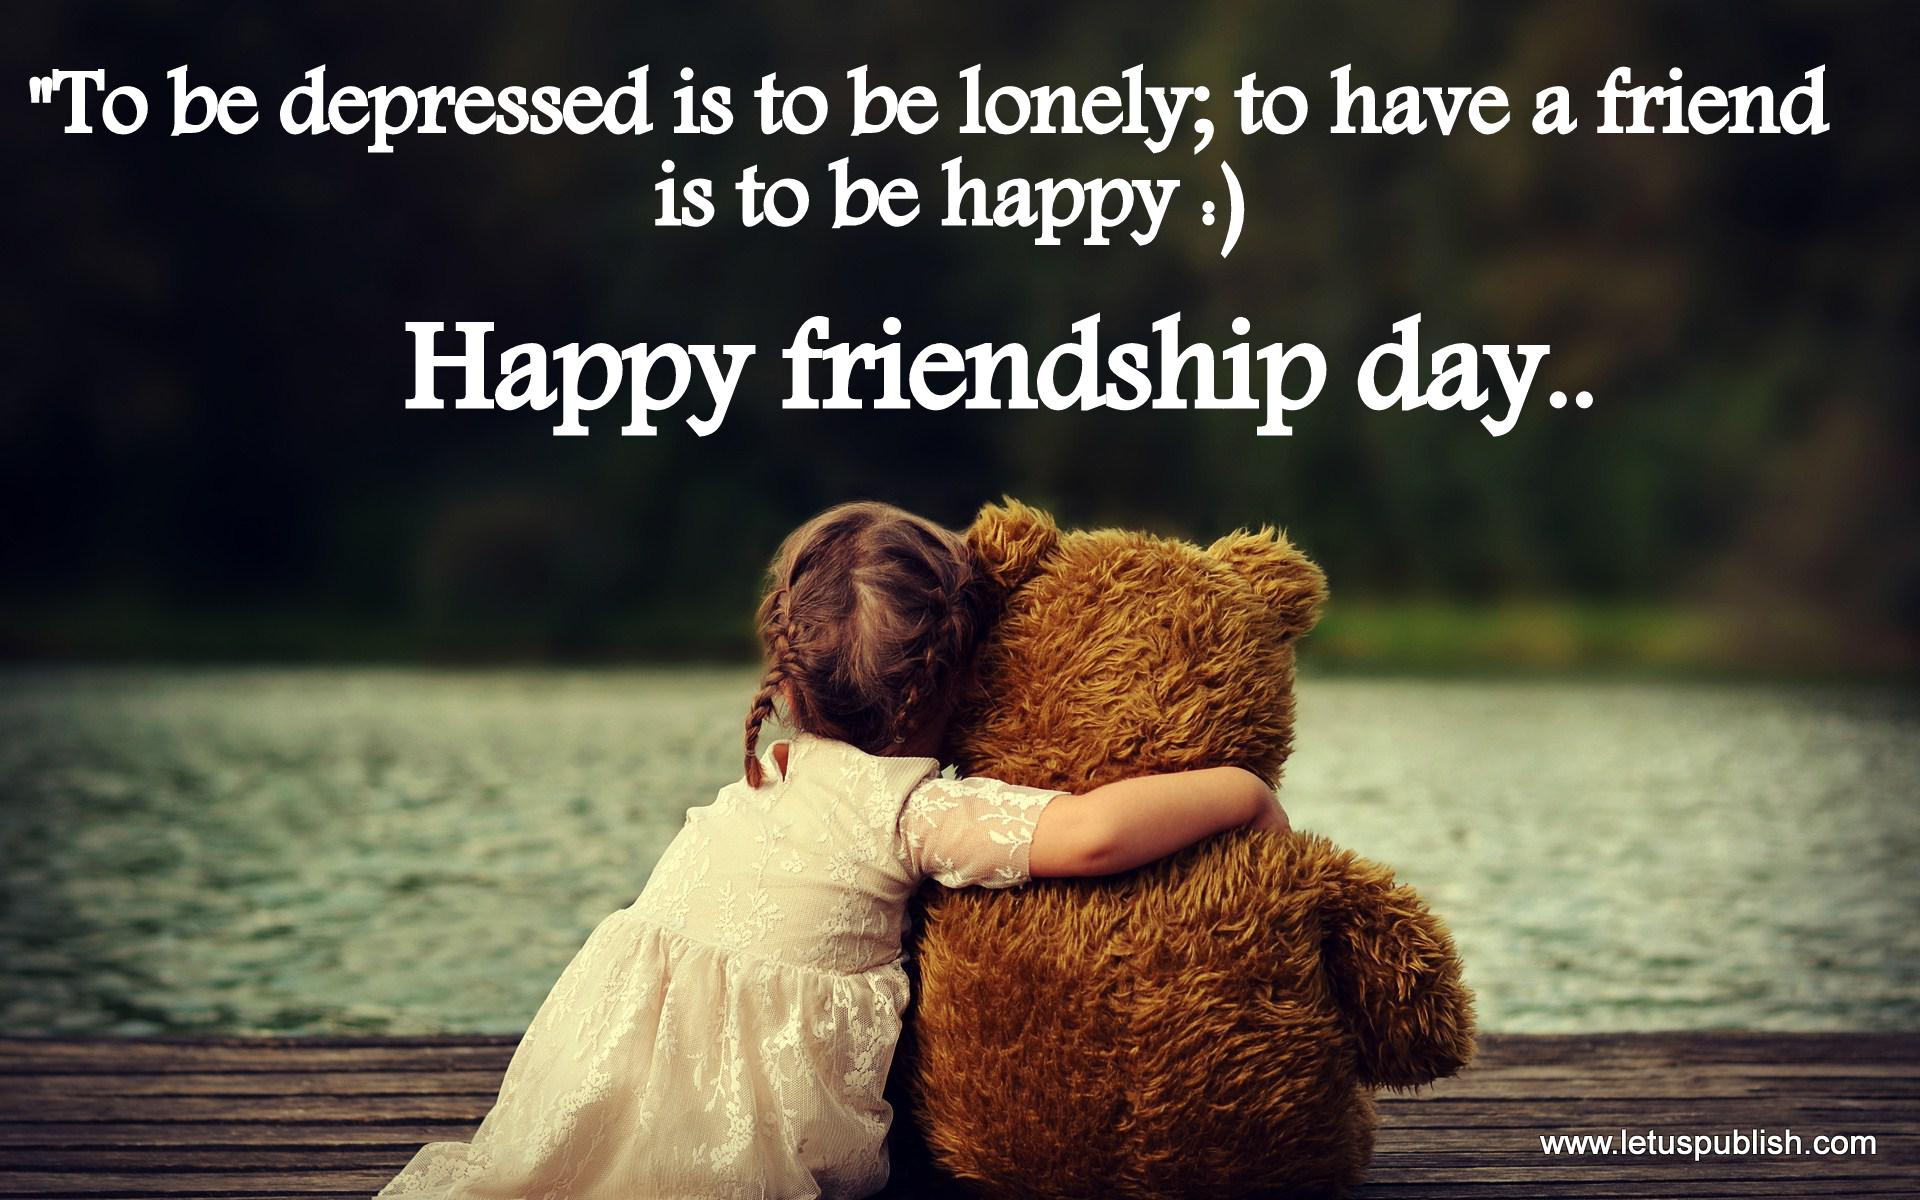 Happy Friendship Day Latest Hd Wallpaper For Whatsapp Download